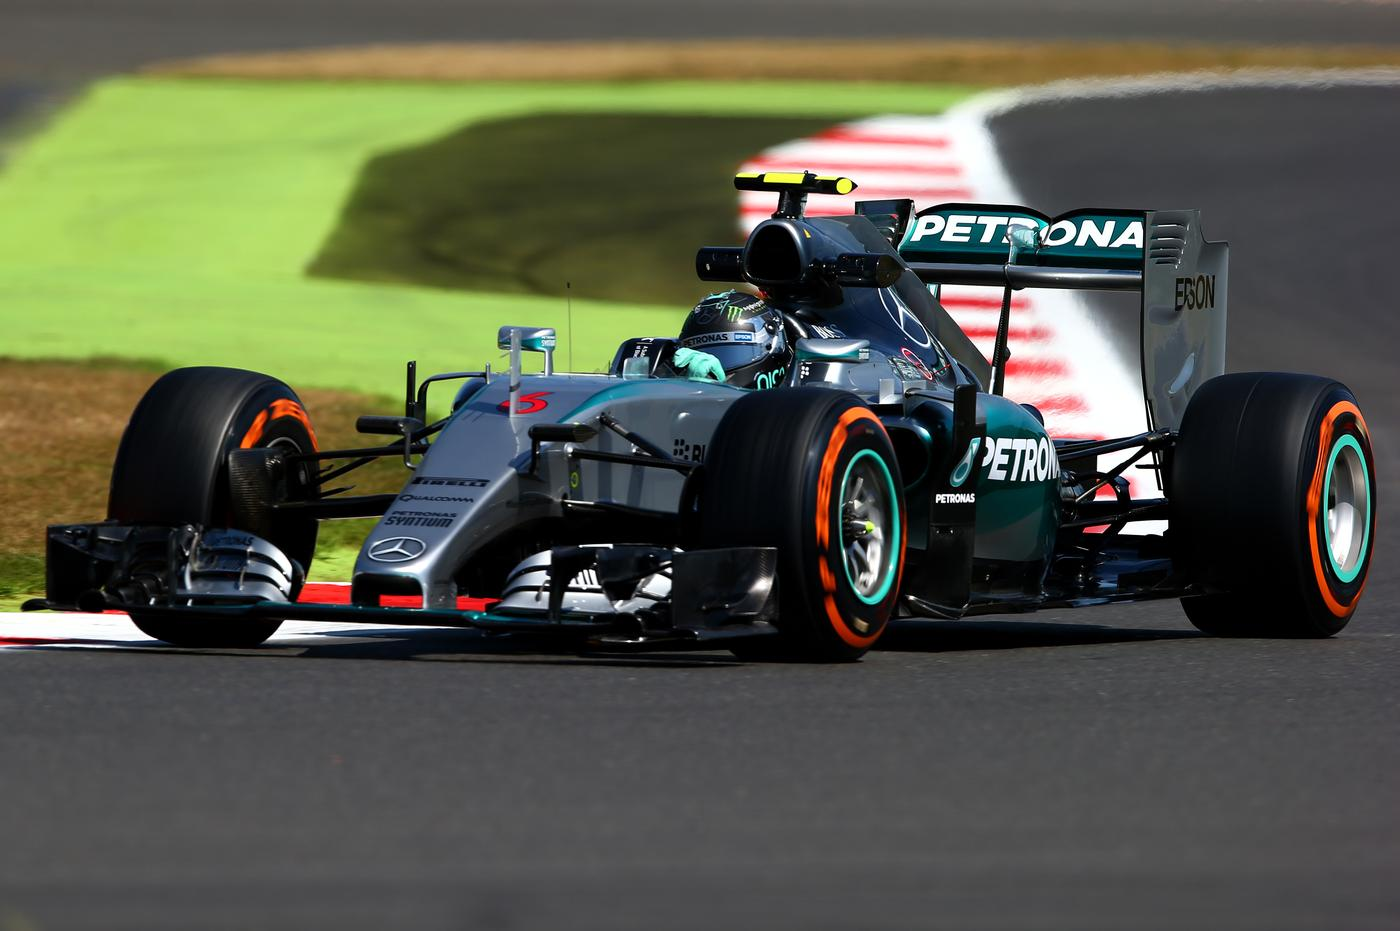 Nico Rosberg leaves Lewis Hamilton trailing in his wake during first practice at British Grand Prix